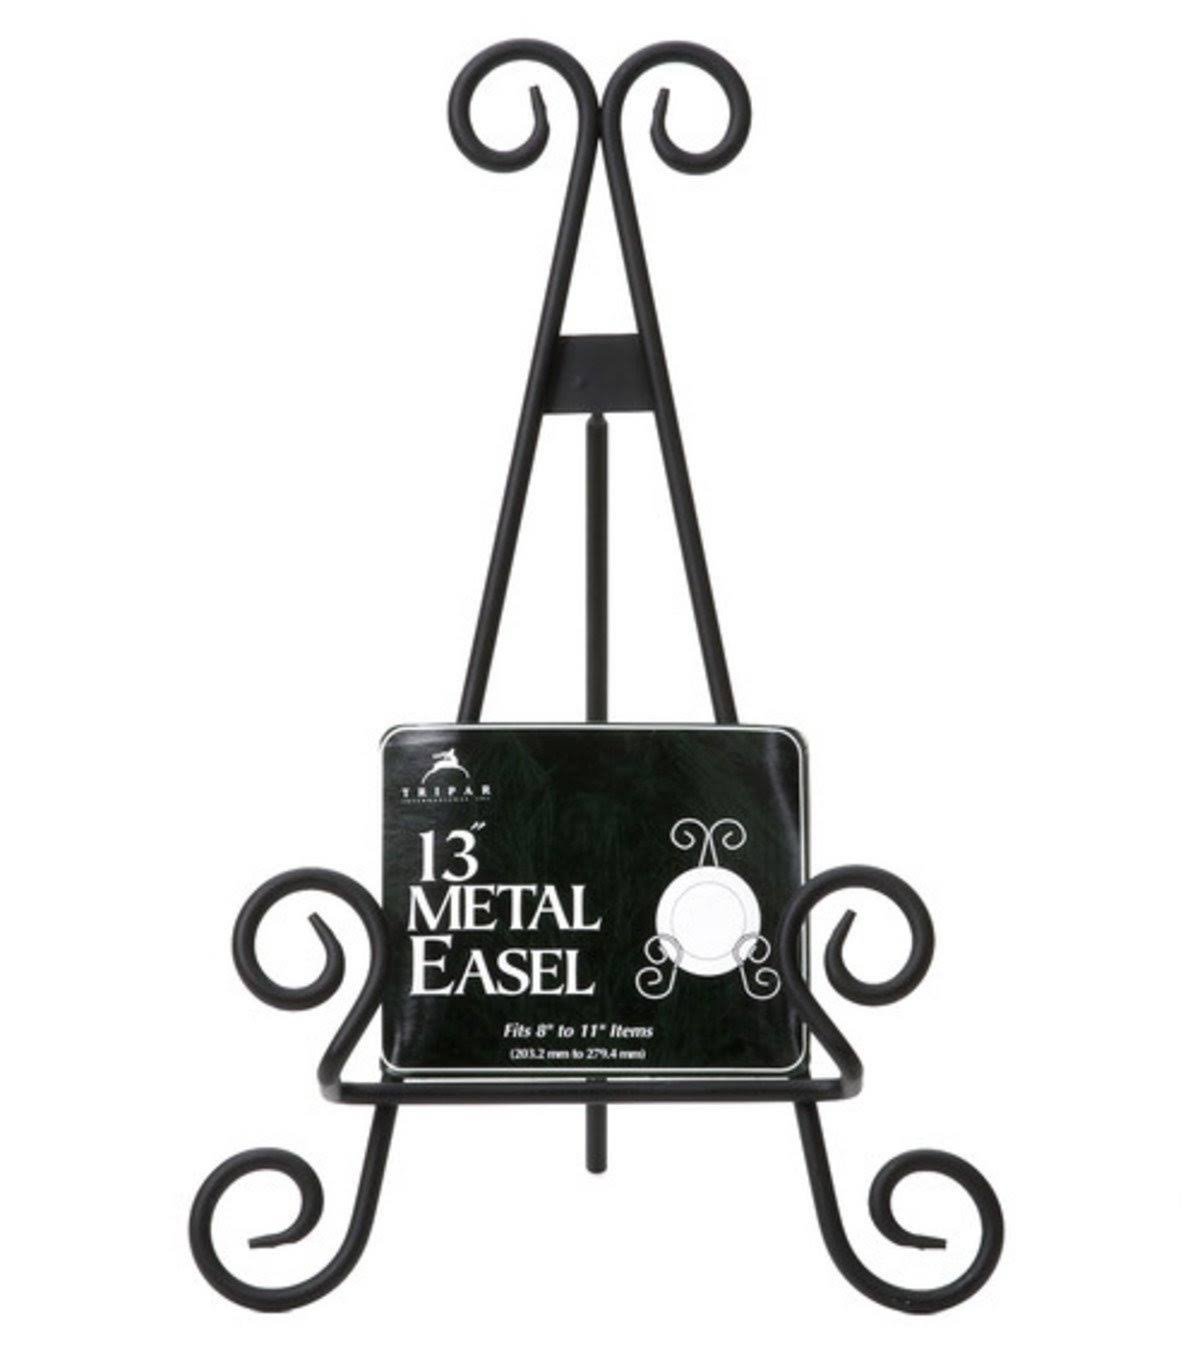 Tripar Metal Display Easel - Black, 13""